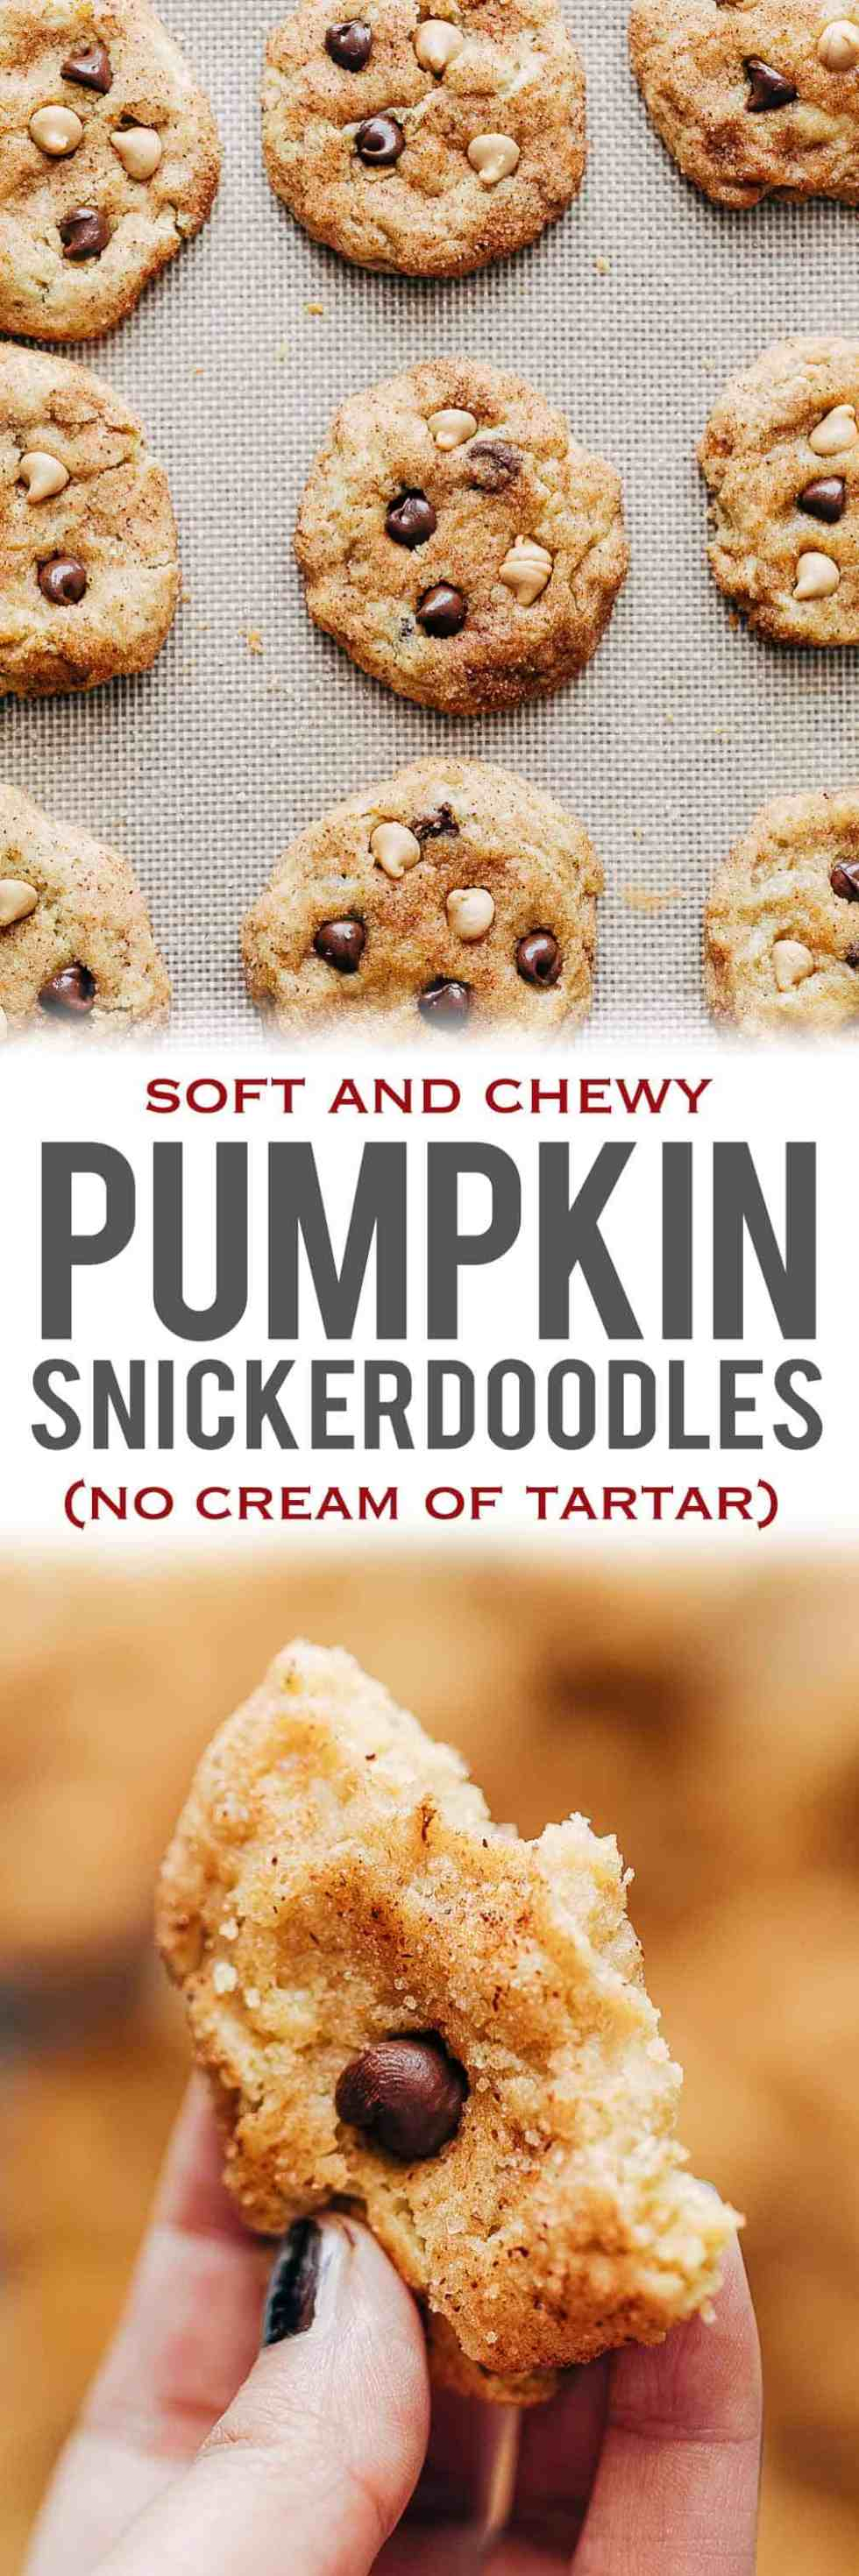 These homemade Pumpkin Snickerdoodle Cookies are soft and chewy have all the fall flavours - pumpkin, cinnamon, chocolate chips and peanut butter chips. Made eggless and without cream of tartar. Perfect for christmas gifting, holiday baking, cookie swaps.